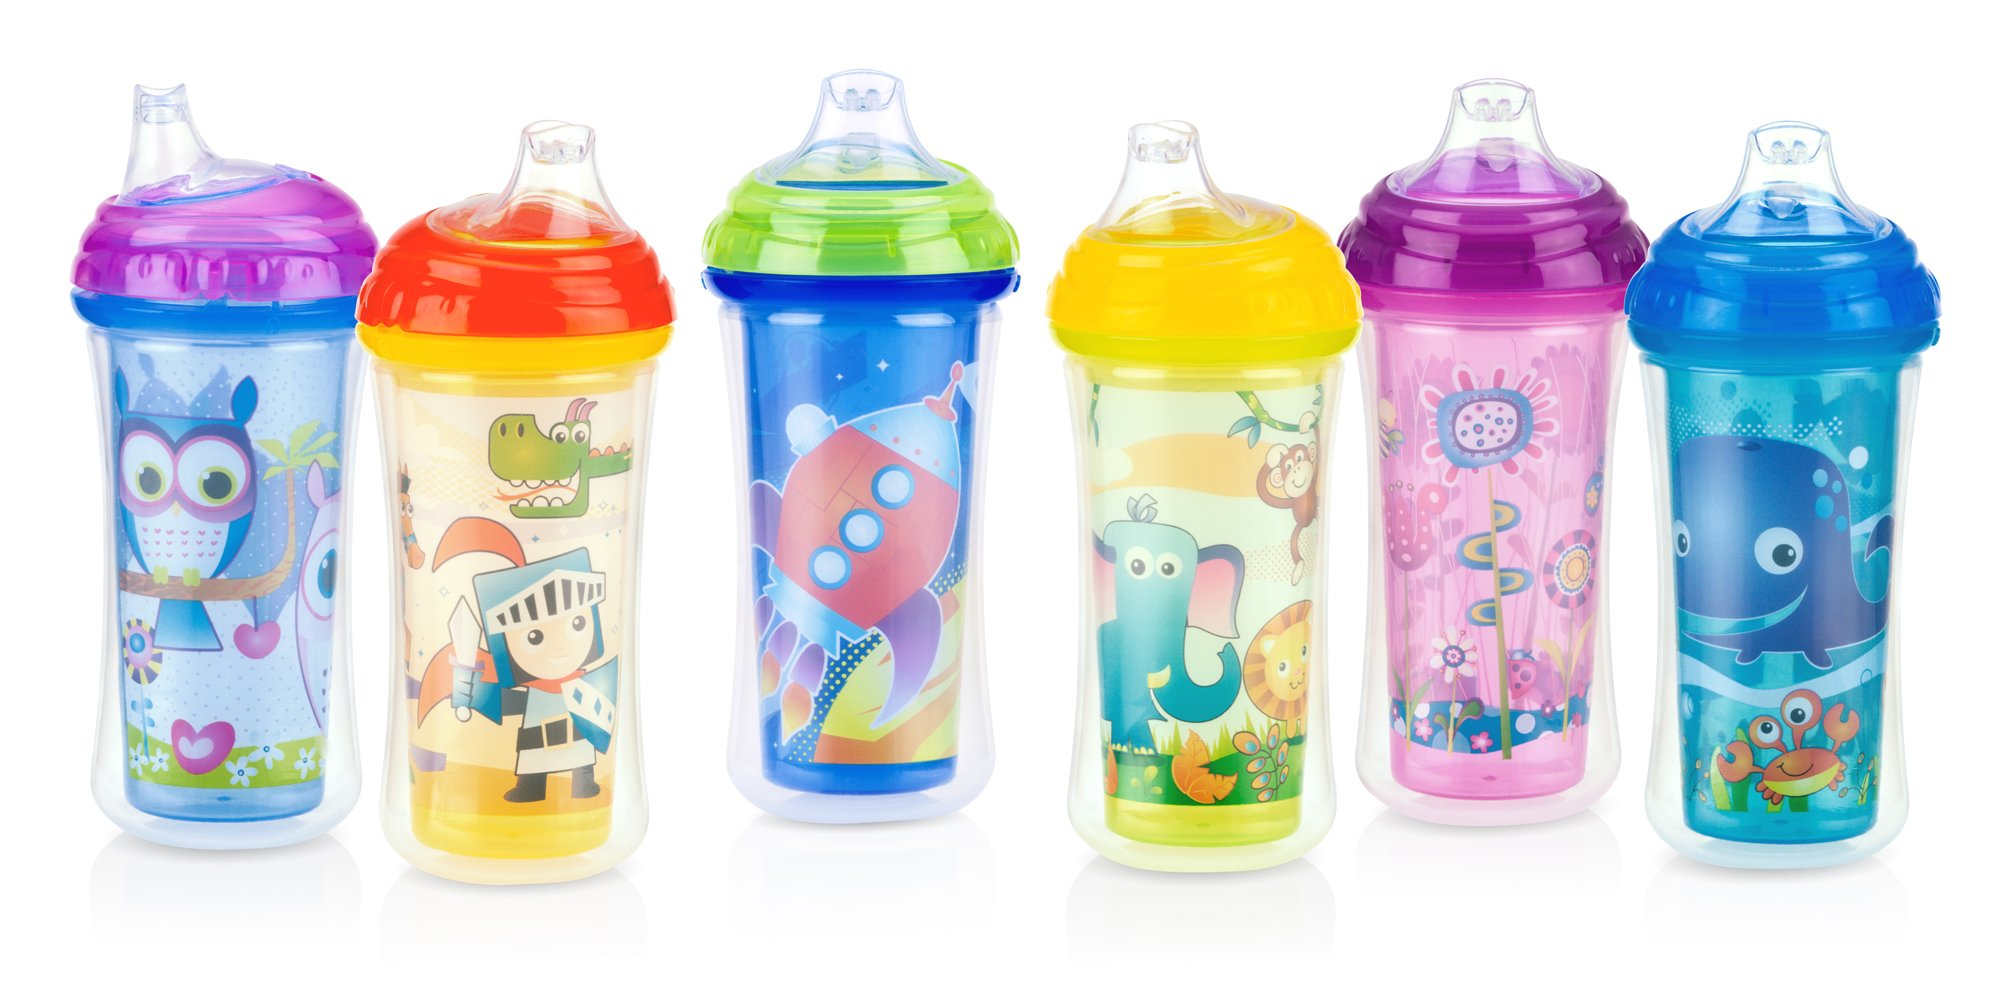 Nuby No-Spill Insulated Sipper with Spout, 9 Ounce, Colors May Vary